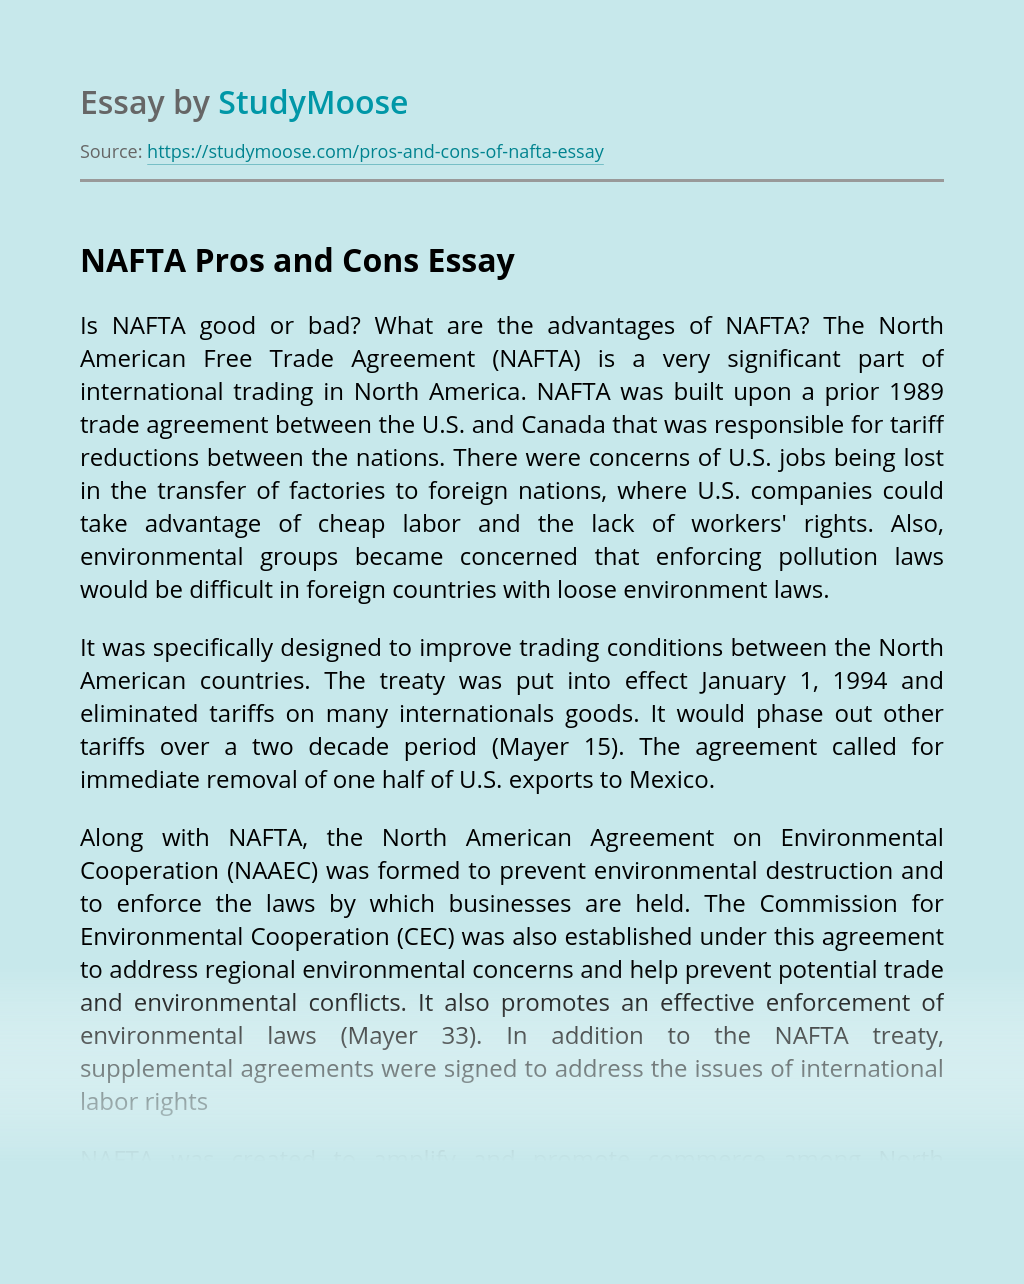 NAFTA Pros and Cons